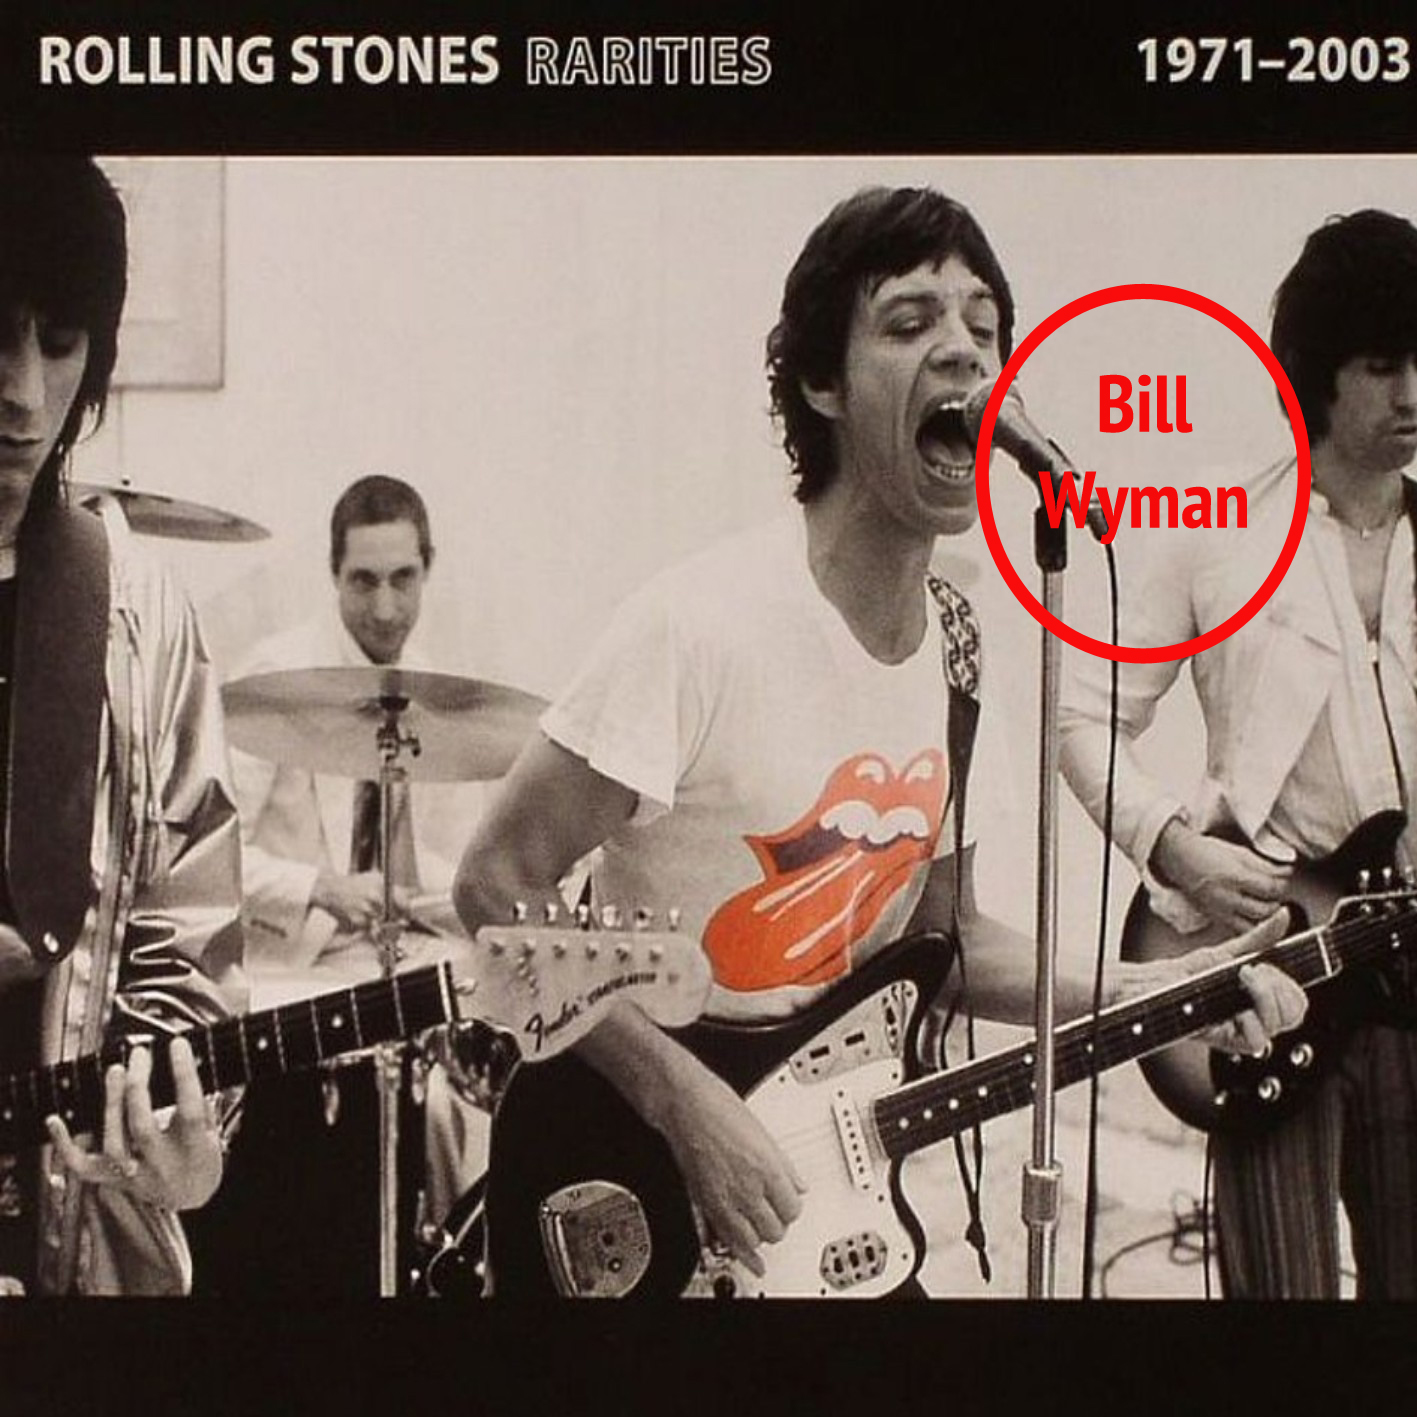 The Rolling Stones Bill Wyman Removed Photoshop Rarities Album Cover